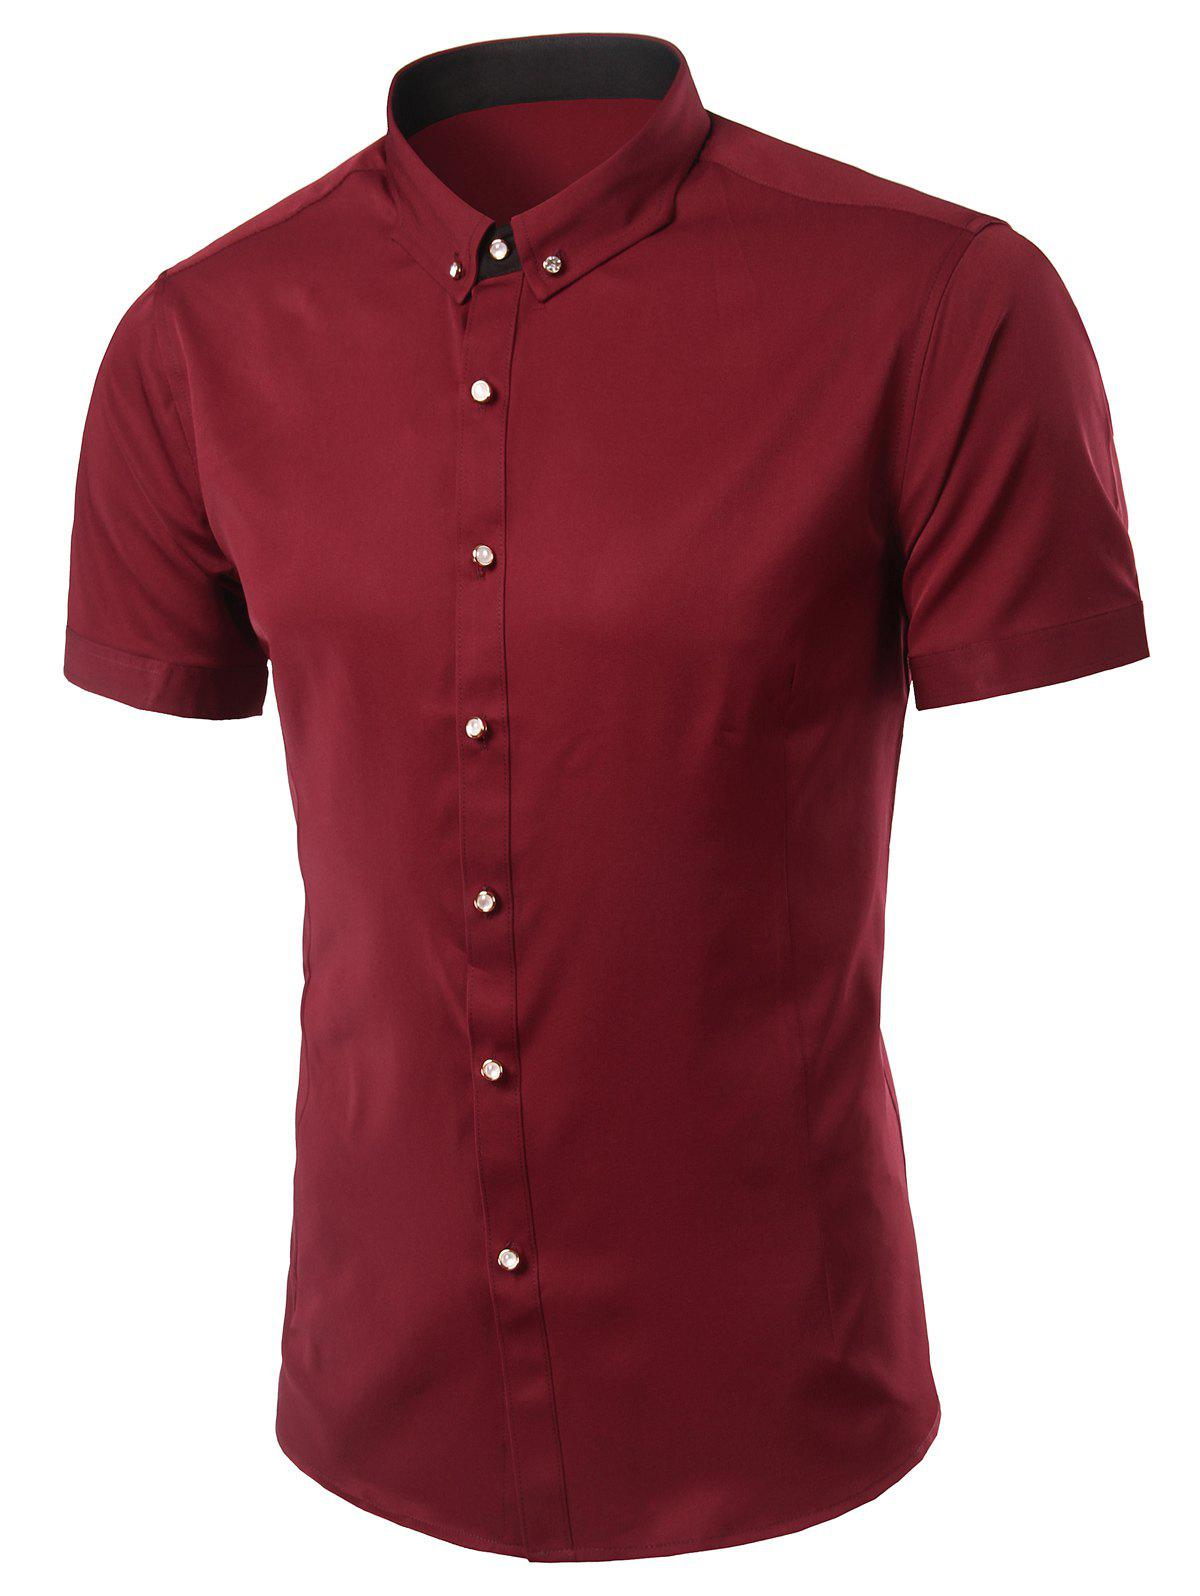 Stylish Button-Down Turn-Down Collar Short Sleeve Men's Shirt - RED M